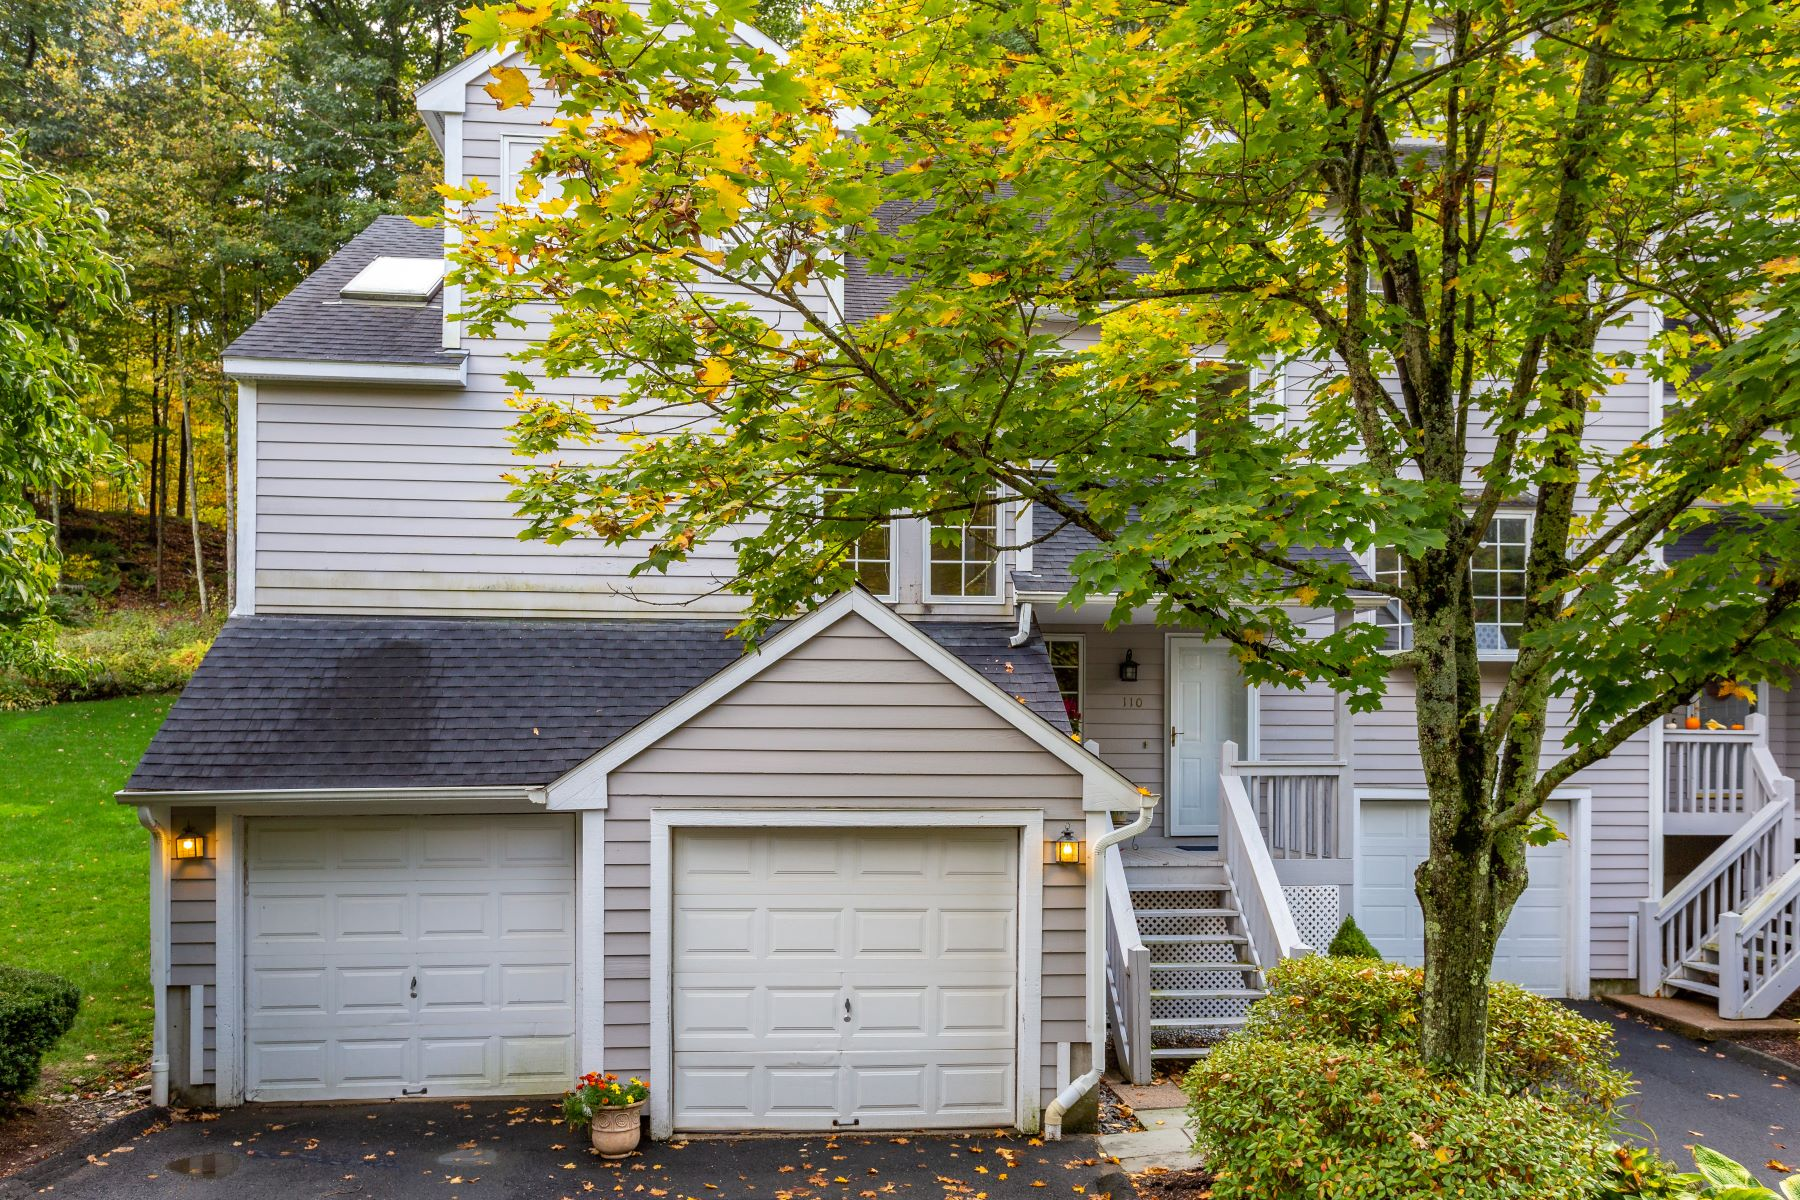 Single Family Homes for Sale at 110 Winterbourne Lane 110 Winterbourne Ln 110 Canton, Connecticut 06019 United States